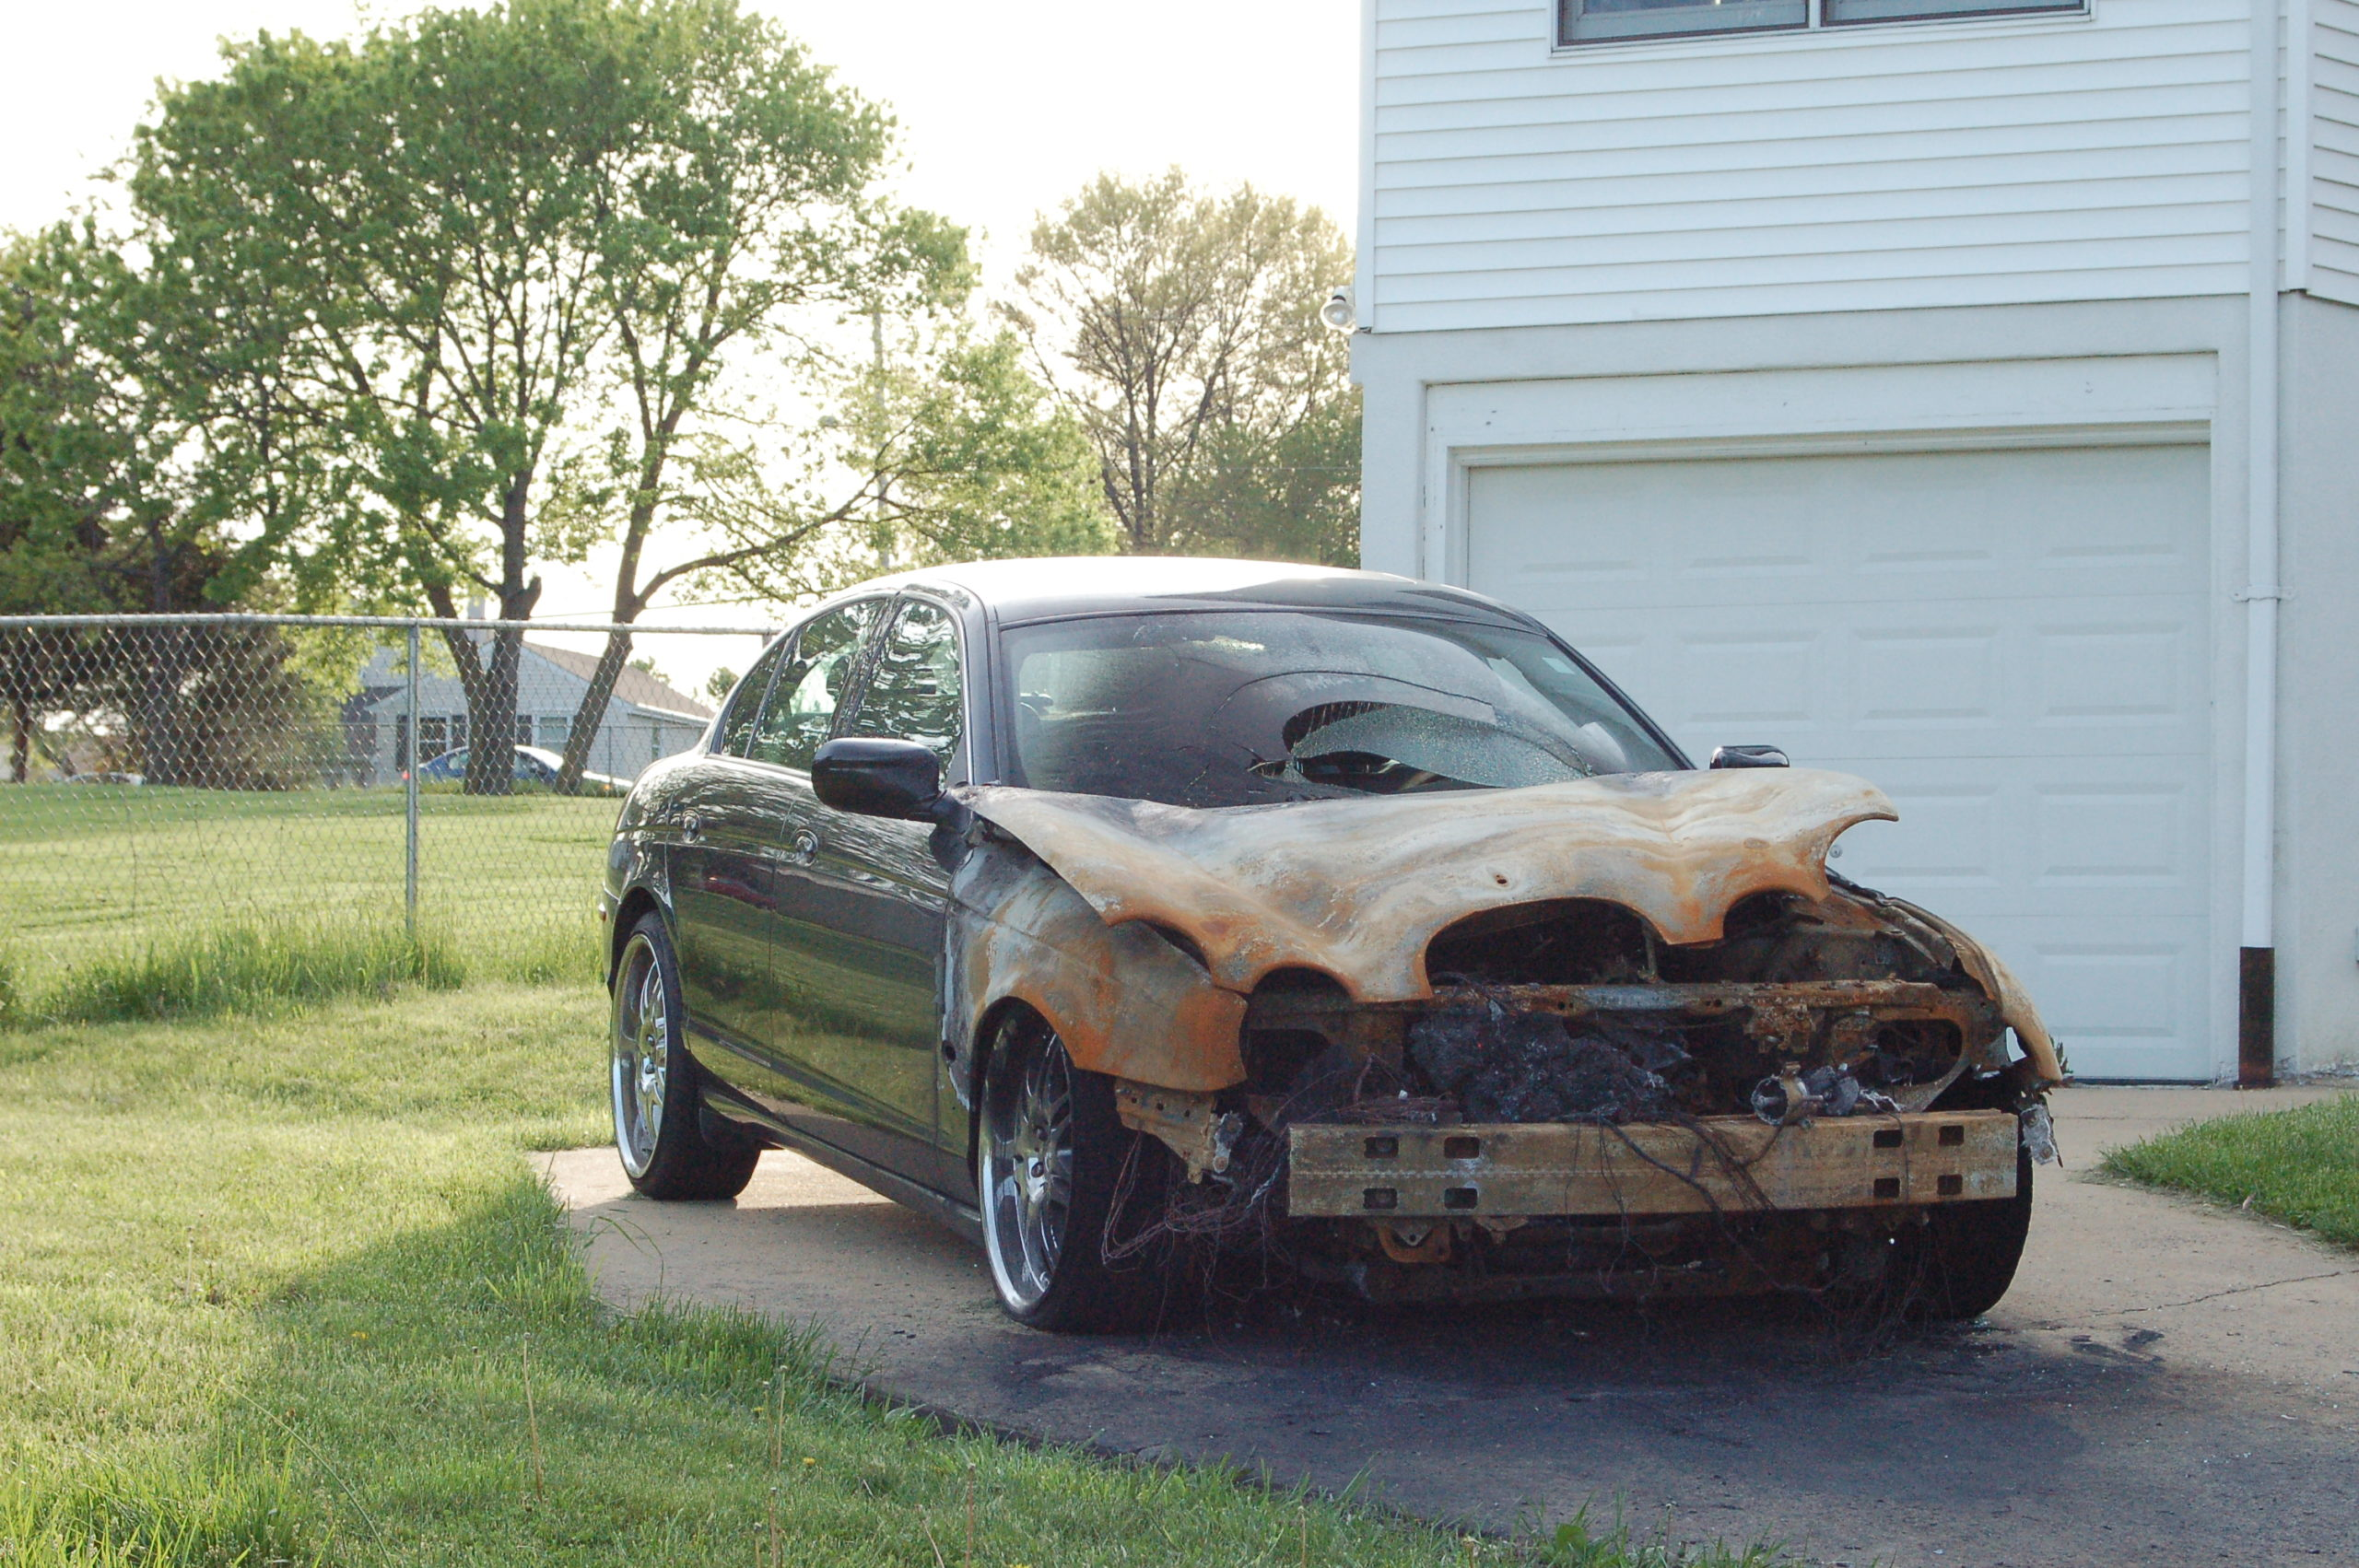 We Offer Cash For Junk Cars and FREE Removal in Lower Paxton, PA!